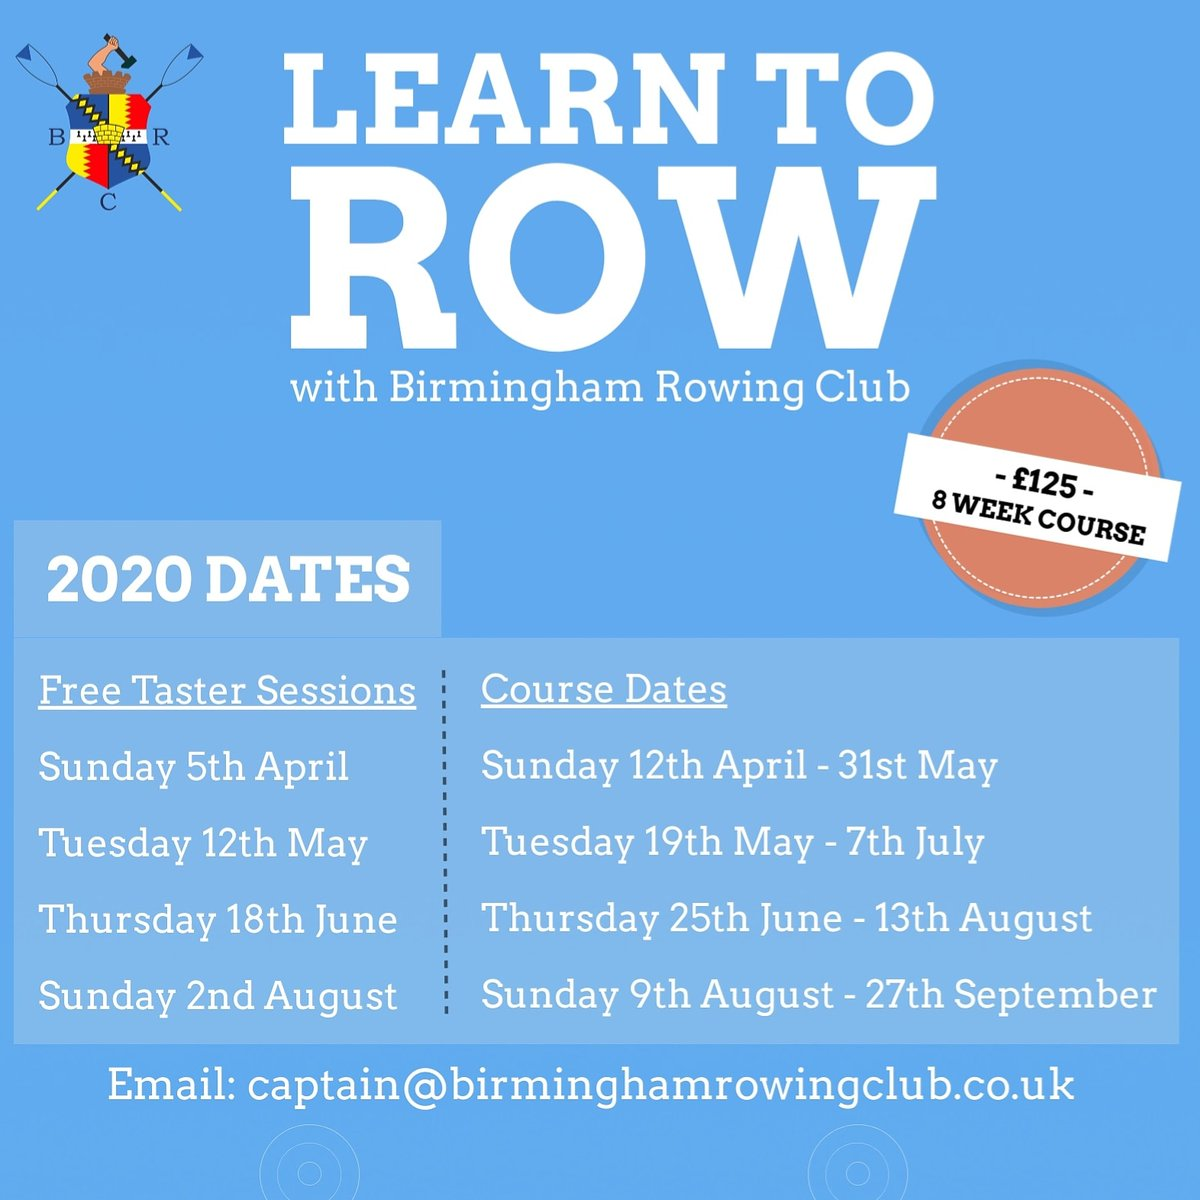 Do you want to try a new sport? Get fitter in 2020 with a great all-body workout? Try something different this year and #LearnToRow in the stunning surrounds of #EdgbastonReservoir right in the heart of #Birmingham   Email: captain@birminghamrowingclub.co.ukpic.twitter.com/A97fcpEBOq